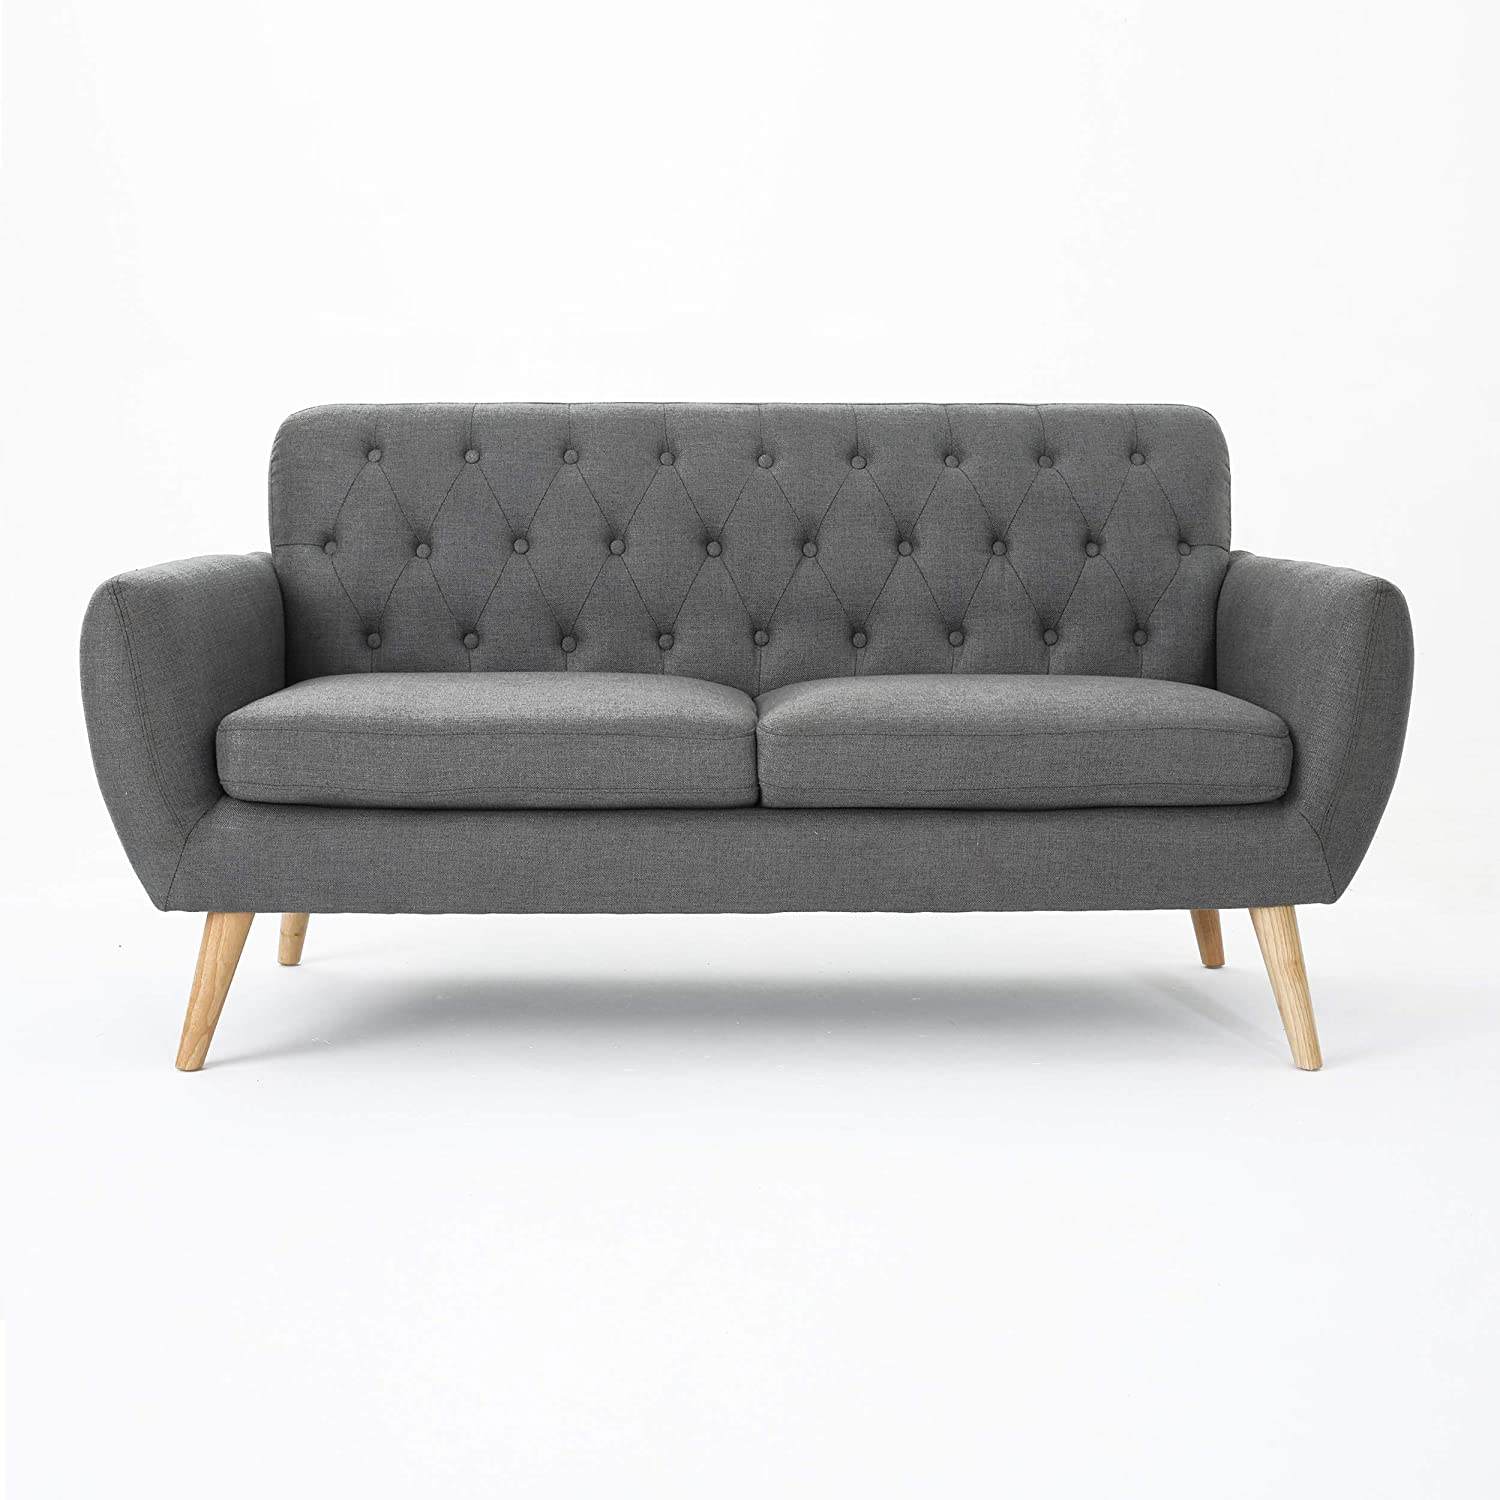 Christopher Knight Home Bernice Mid-Century Modern Tufted Fabric Sofa, Dark Grey / Natural